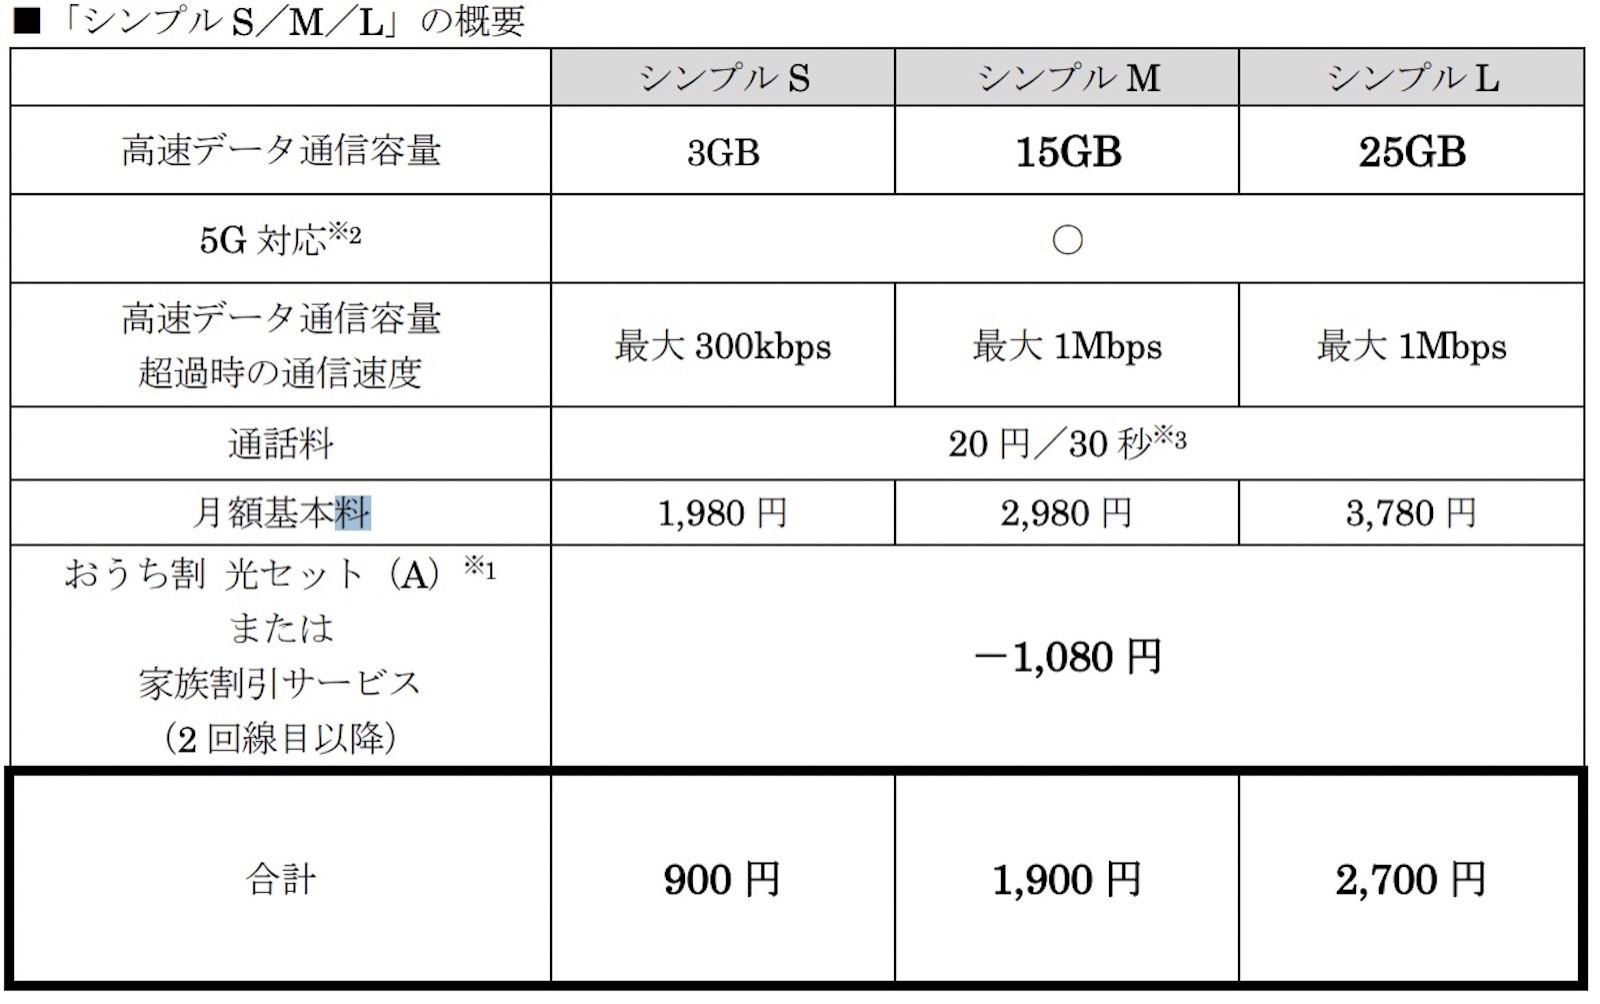 New pricing for ymobile